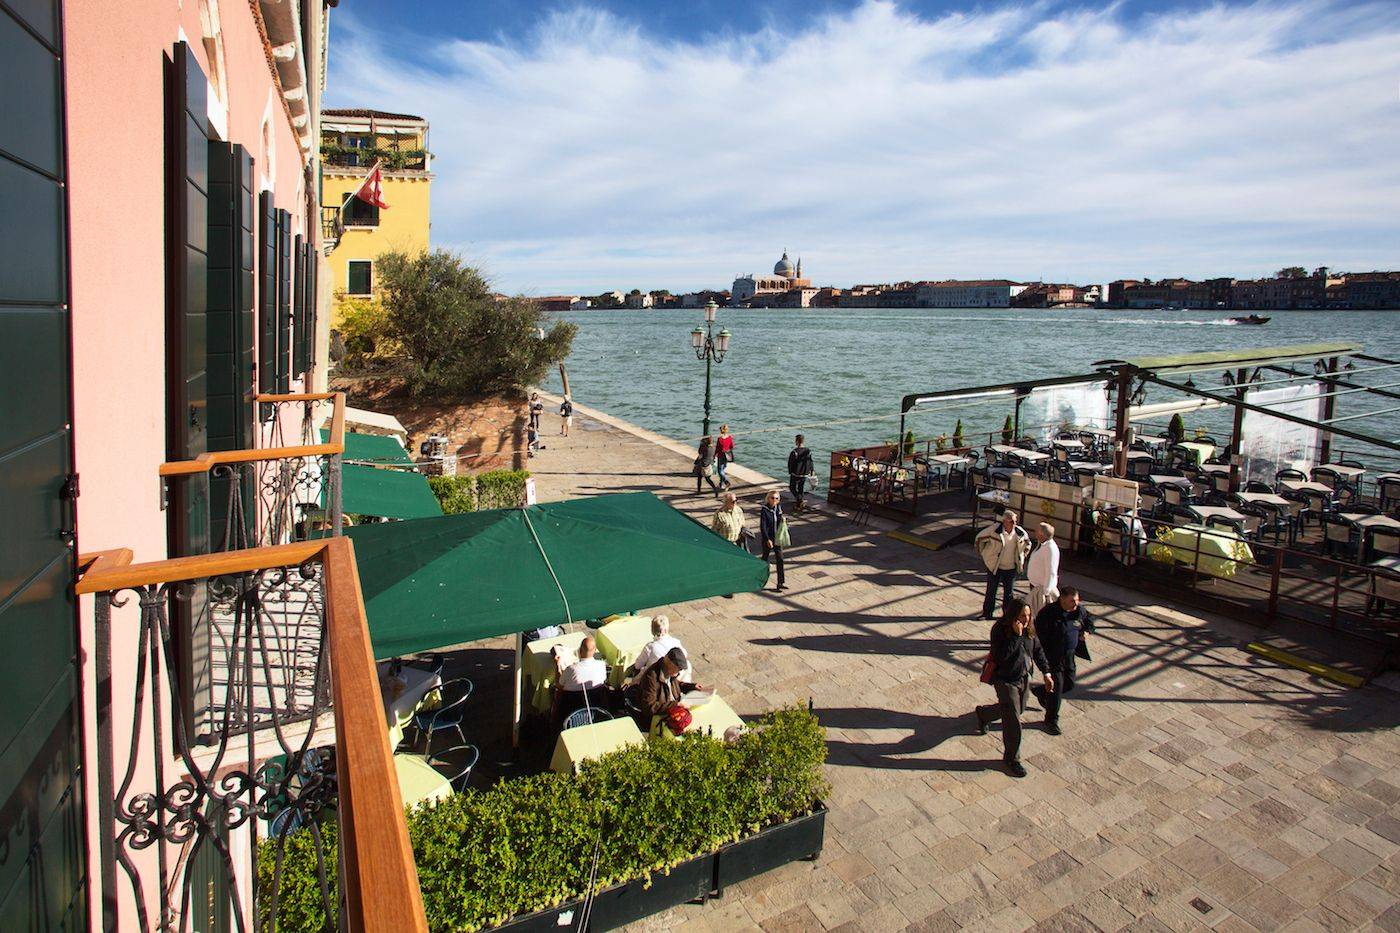 view from the balcony on the Giudecca Canal